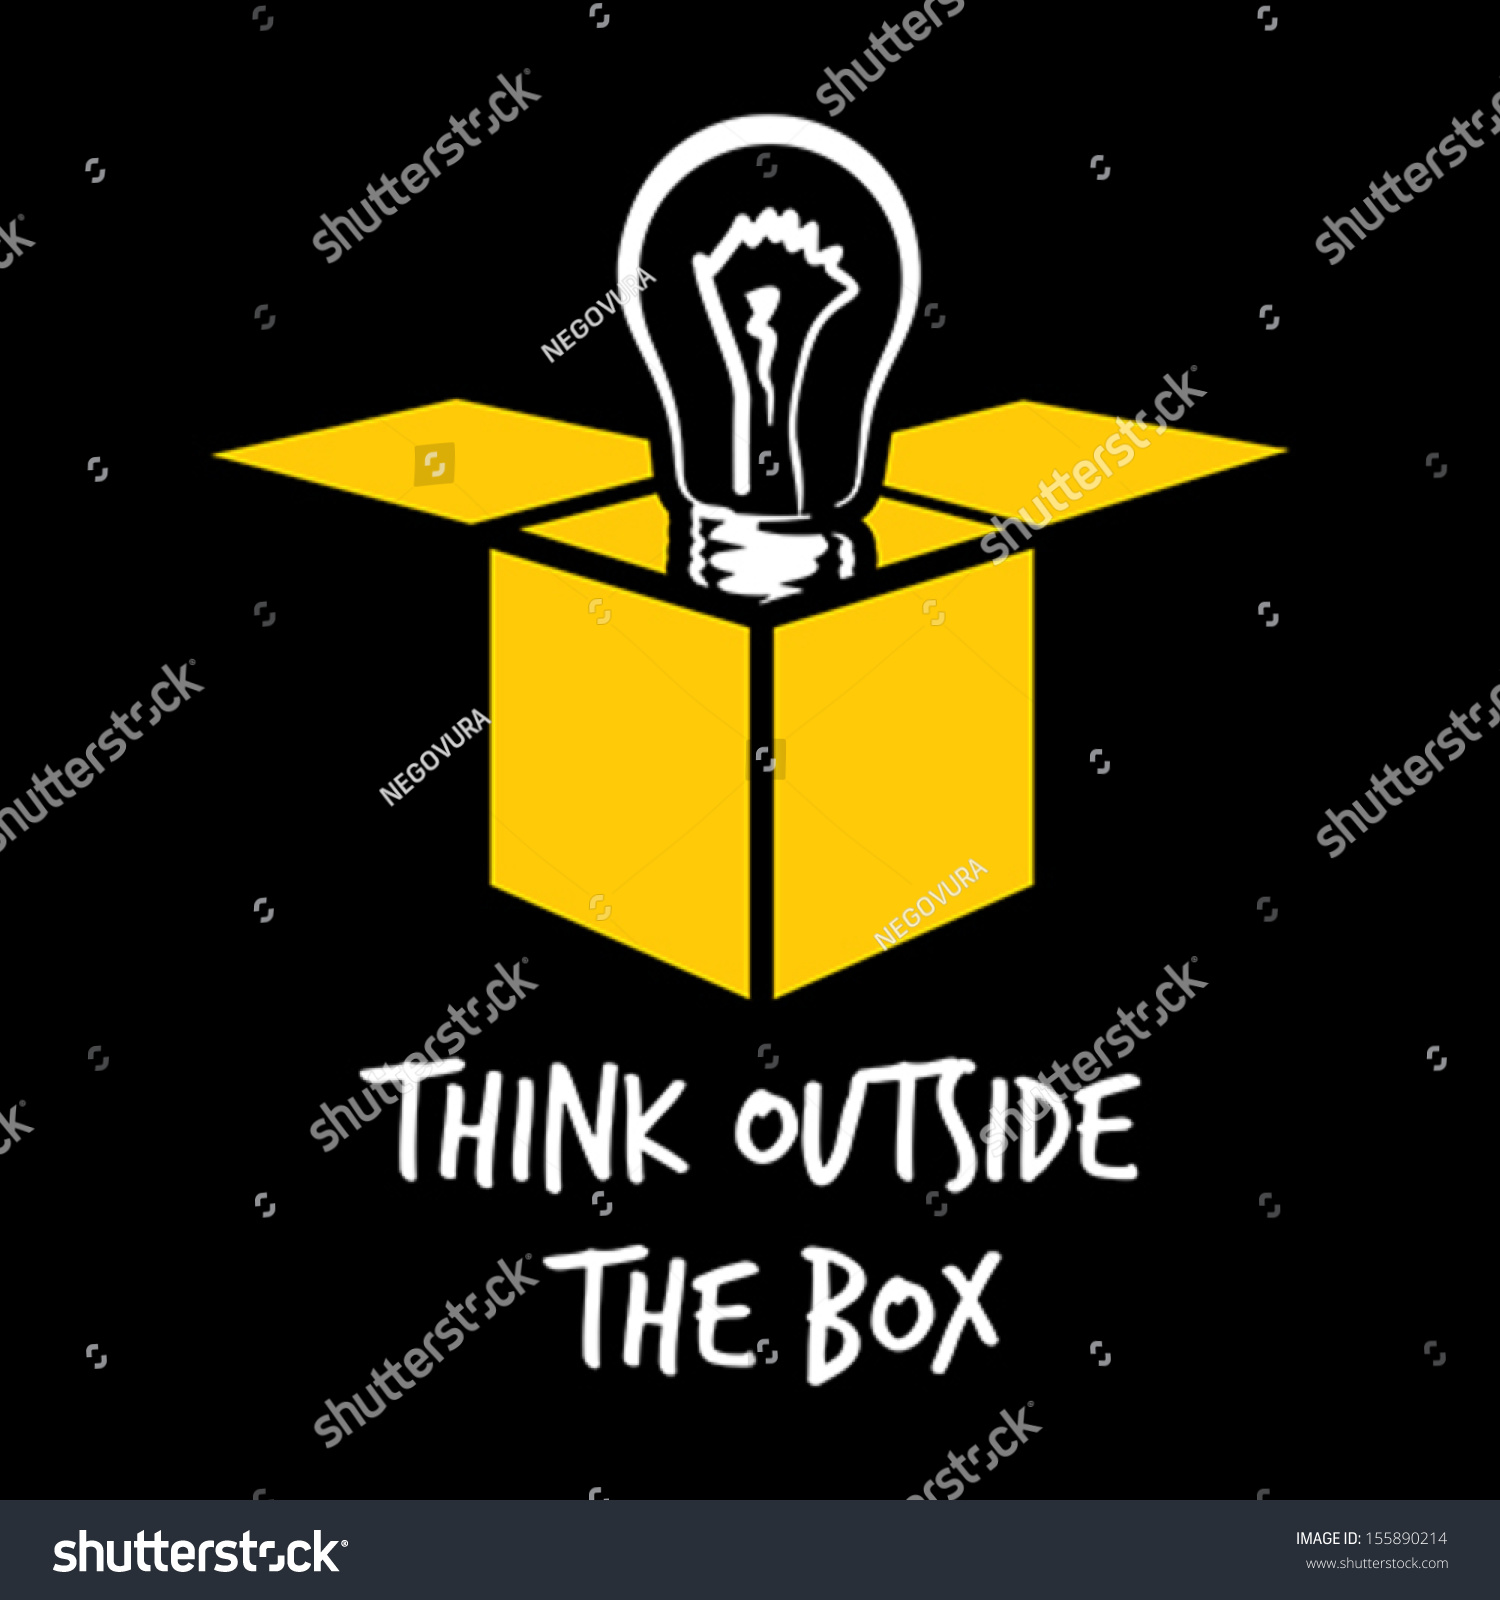 think outside box stock vector 155890214 shutterstock. Black Bedroom Furniture Sets. Home Design Ideas